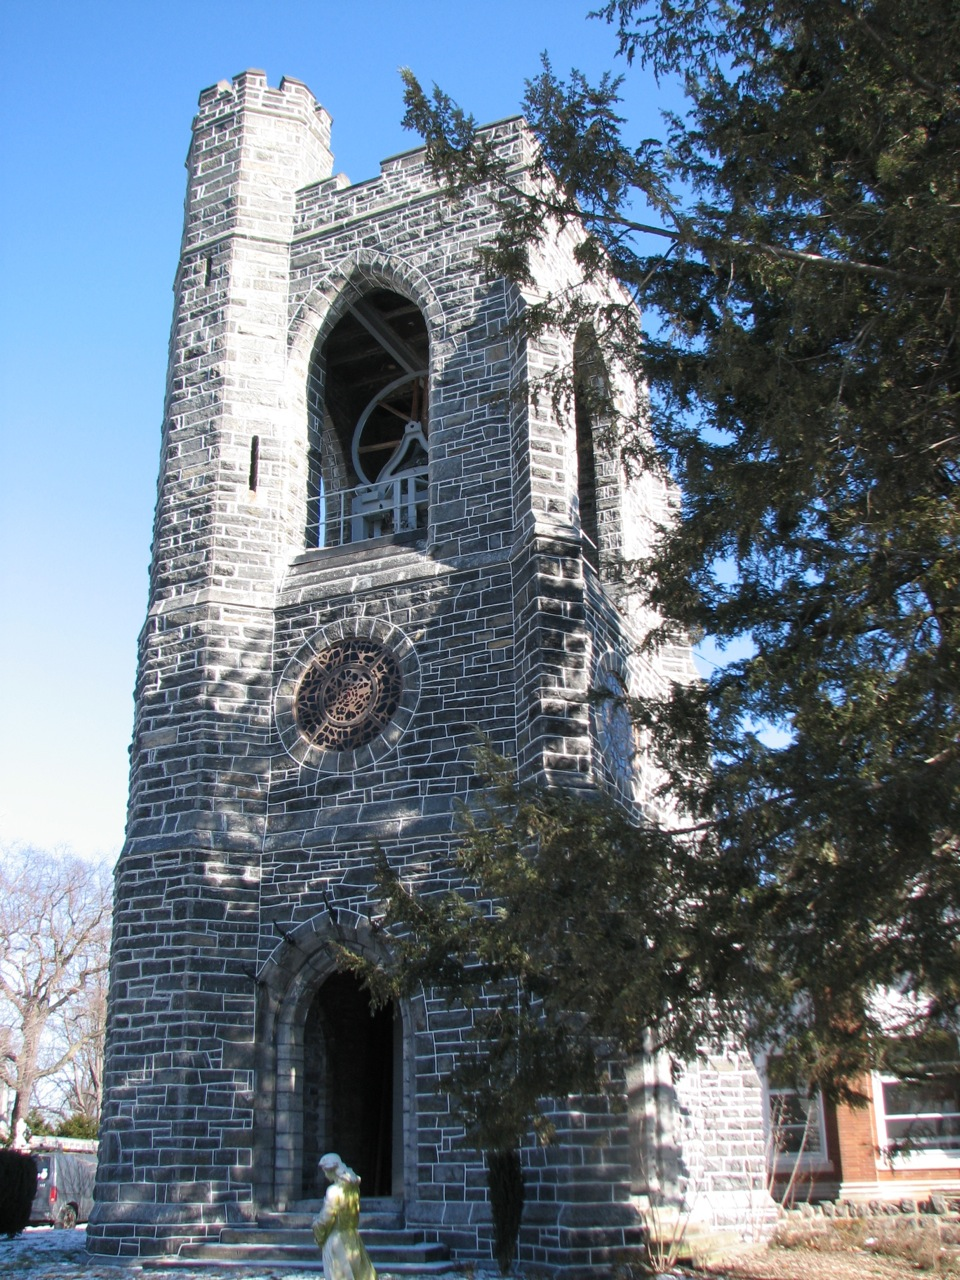 West Laurel Hill's Gothic Revvial bell tower was designed by architects Walter Cope and John Stewardson